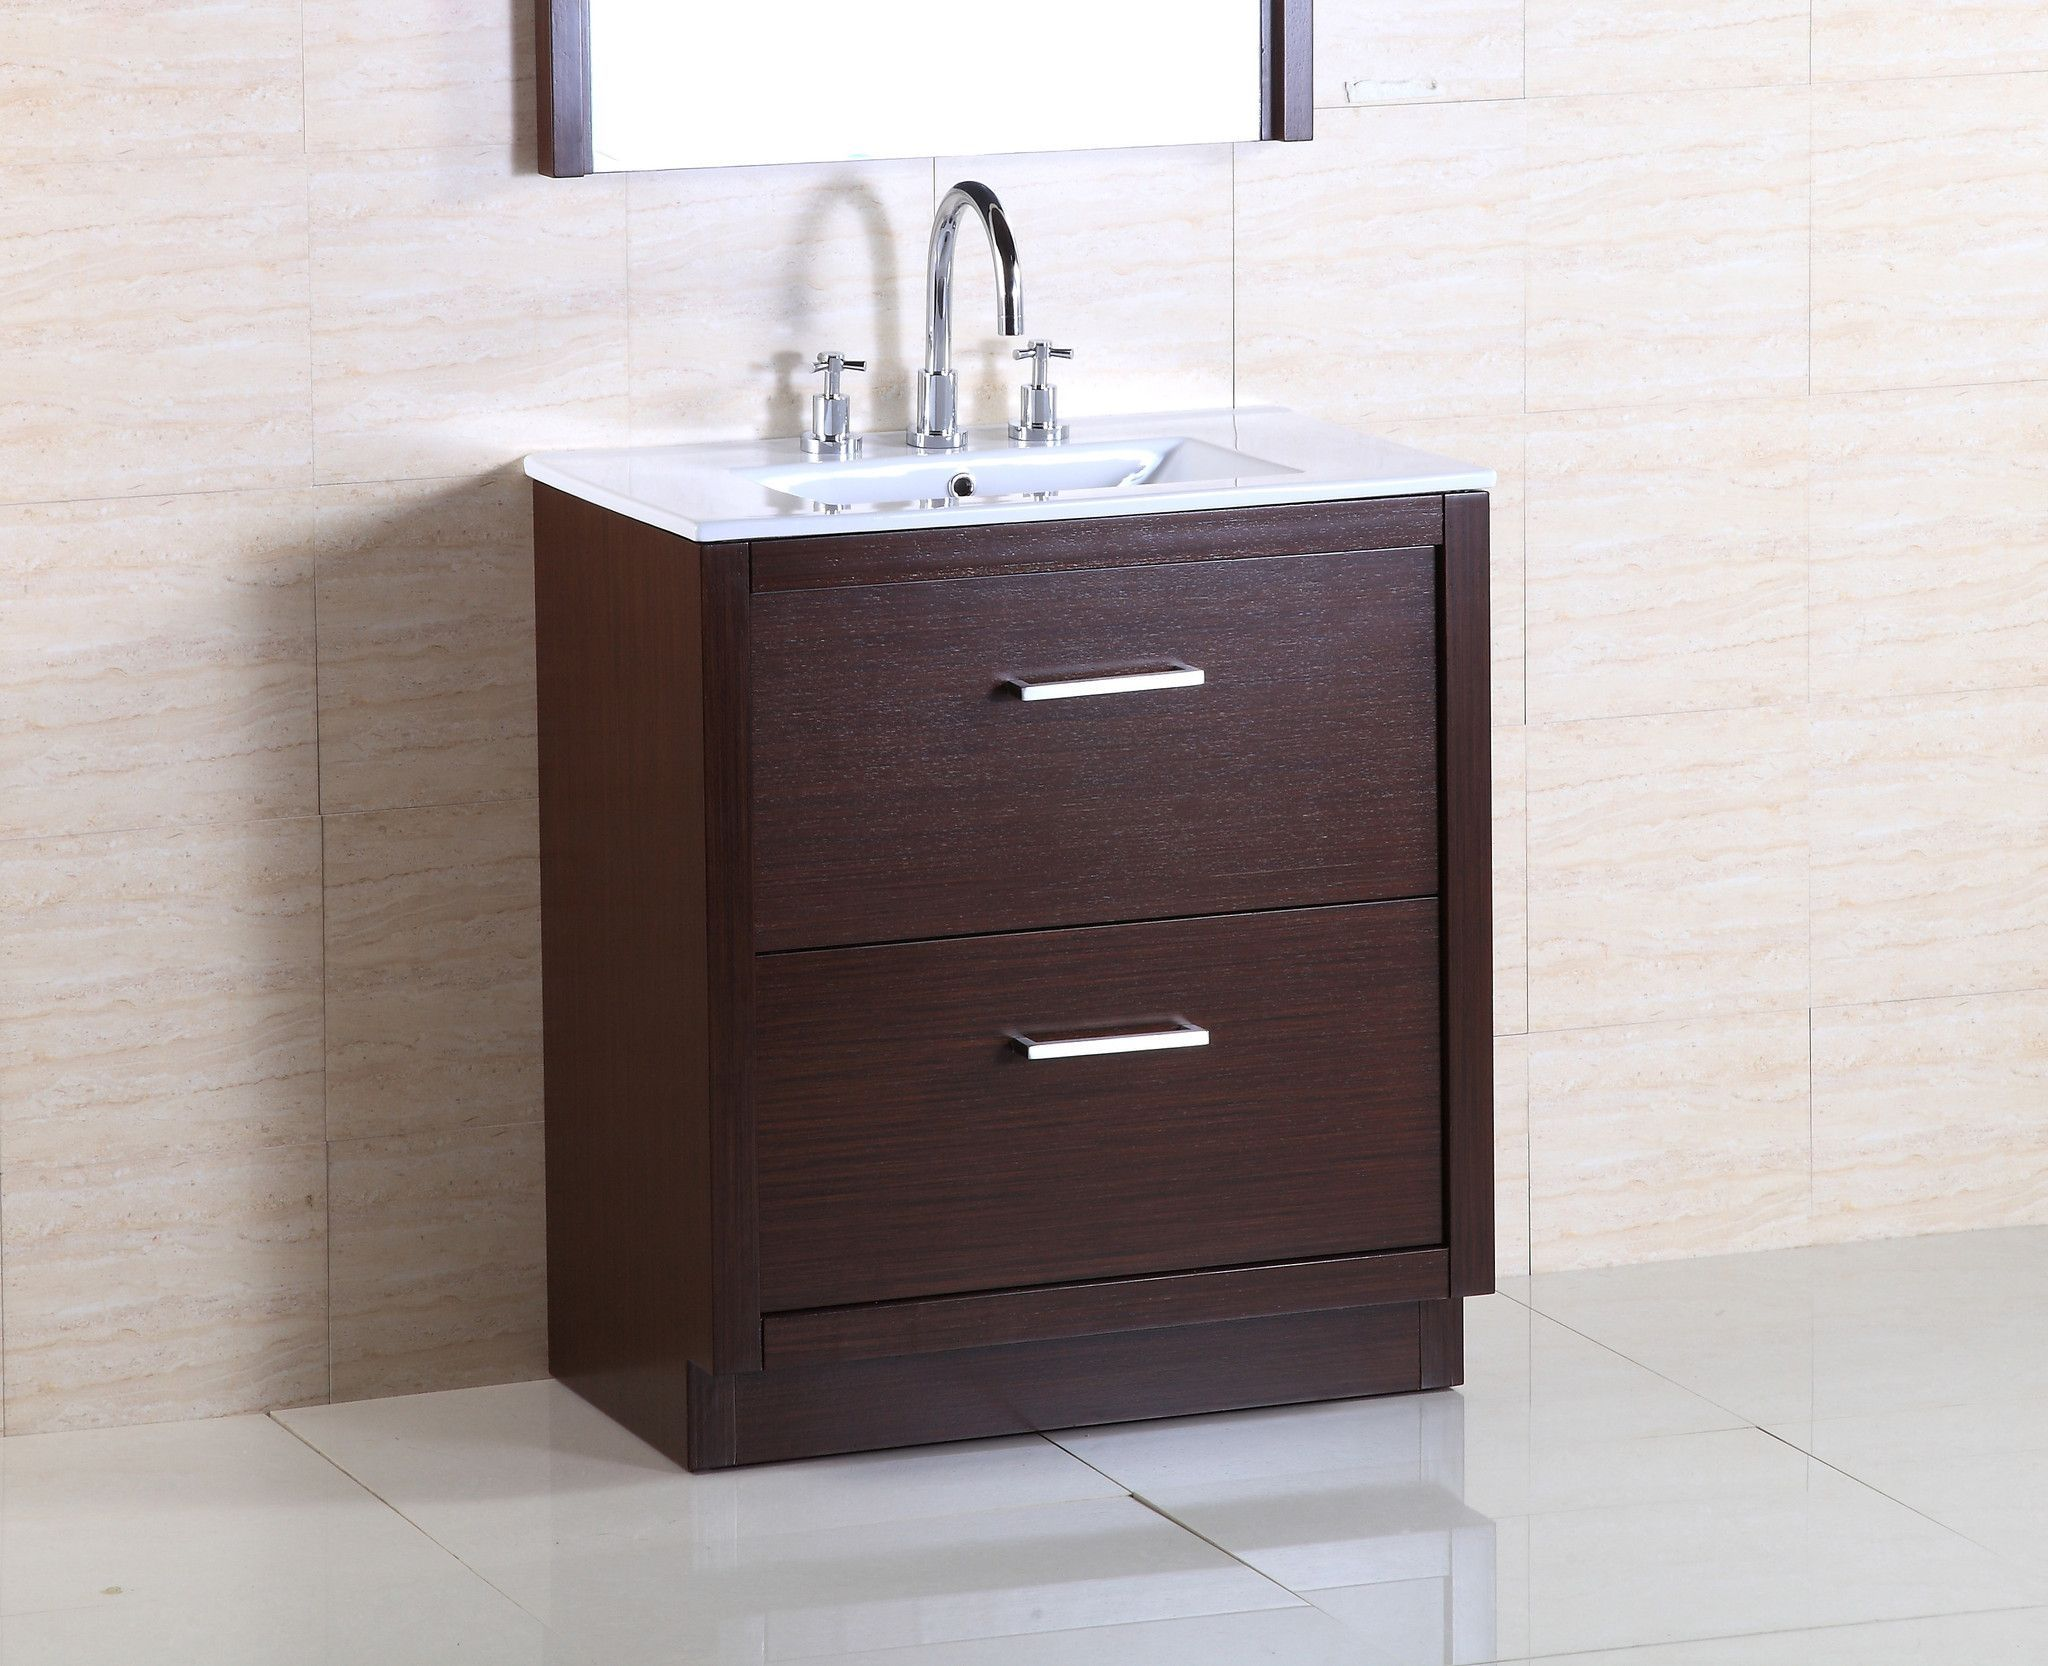 This 30 Vanity Is Elegantly Constructed Of Solid Wood Finished In A Wenge Color